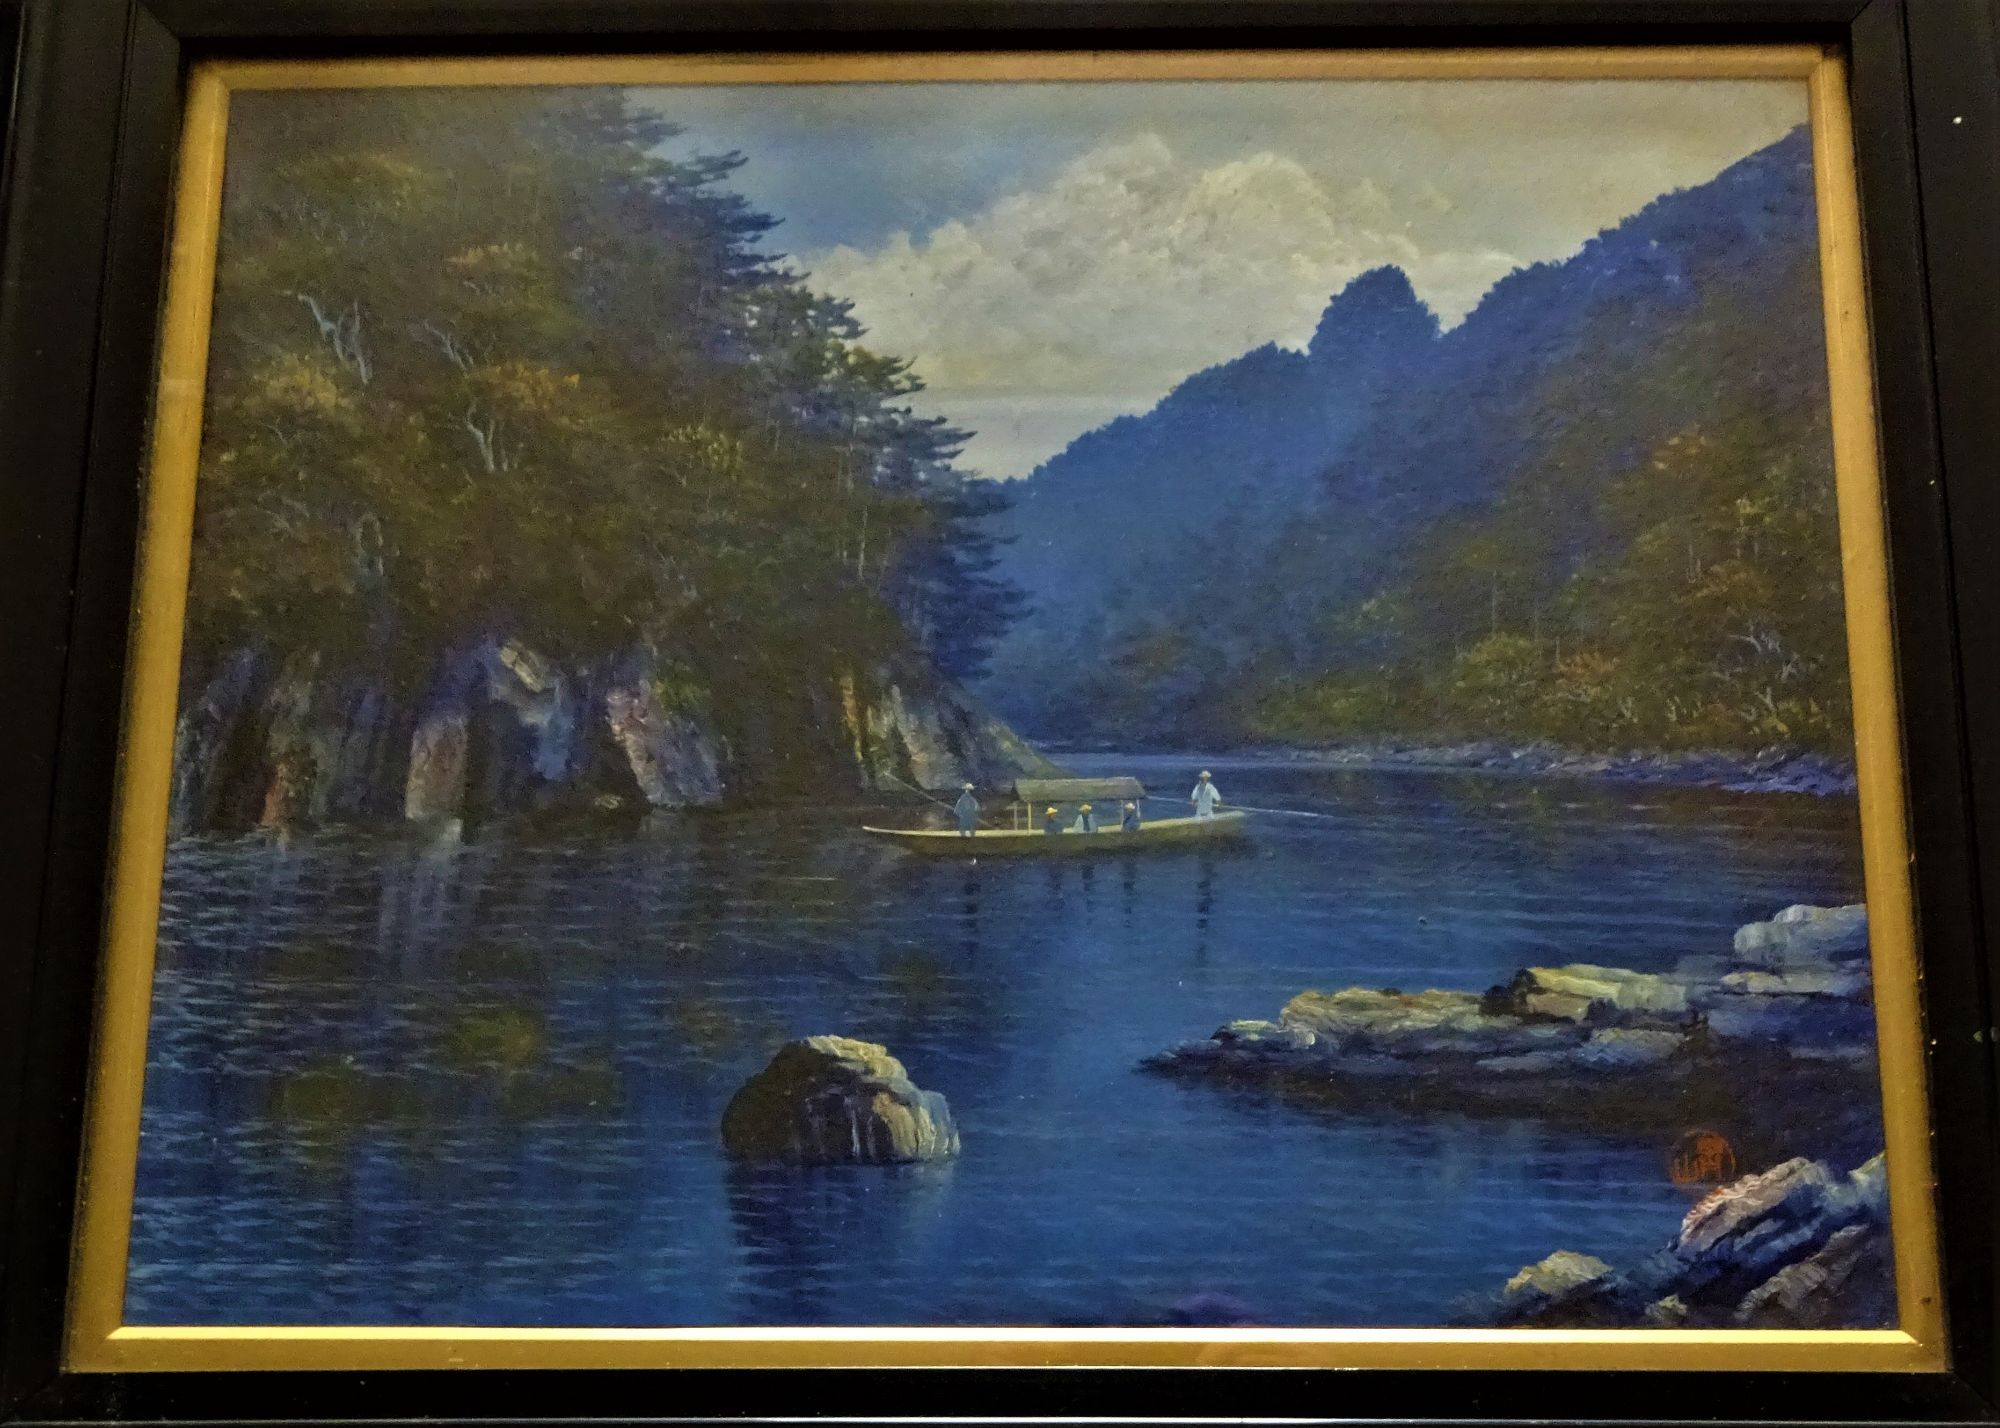 Shou-yama, Oil on board, landscape, c1955. Framed.